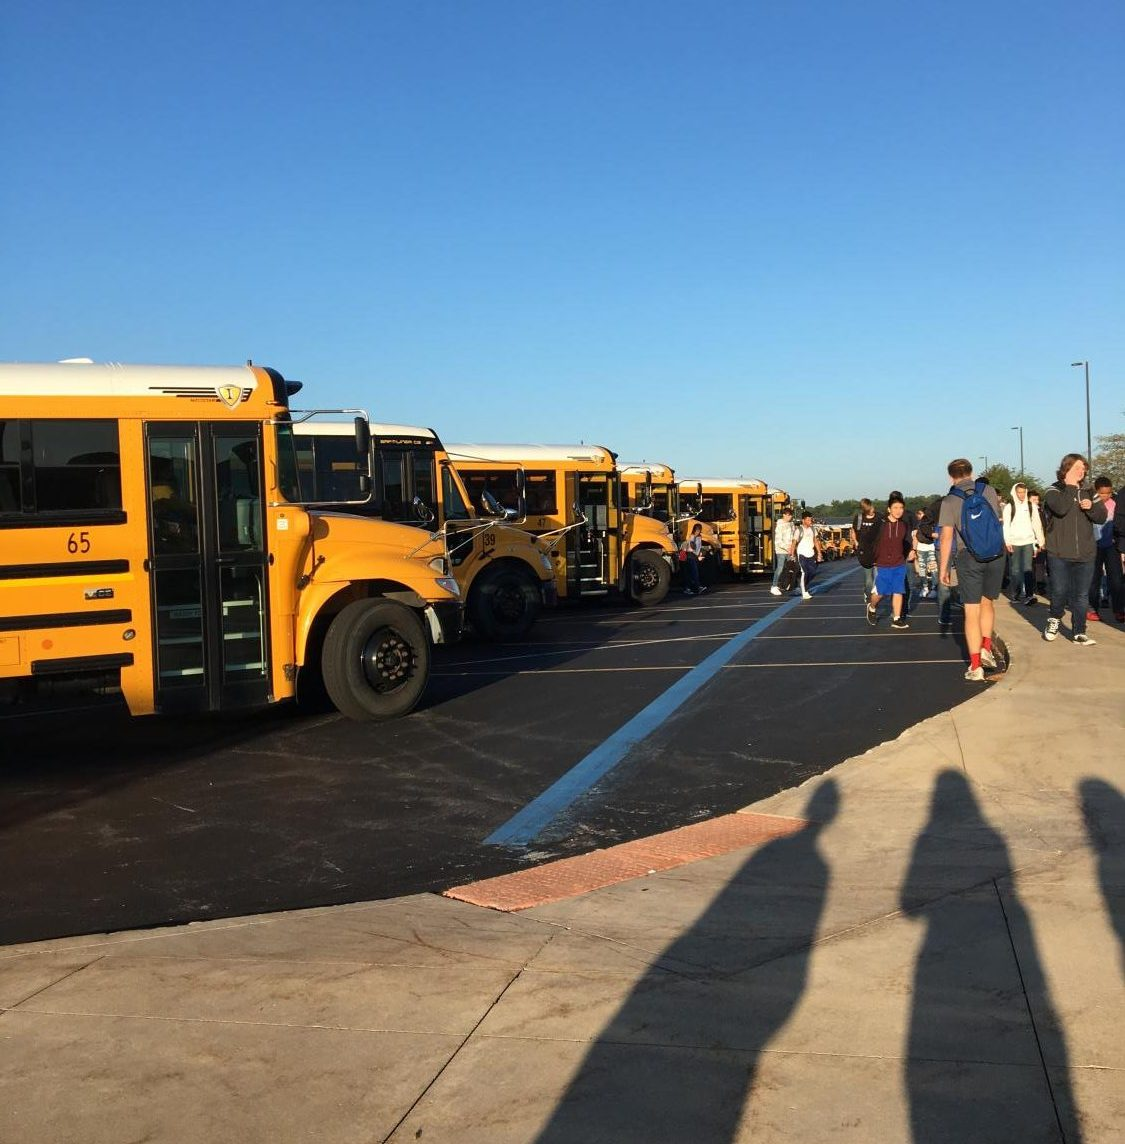 Bus safety is a primary concern for the new traffic regulations around the district. Photo by Kayleigh Lambert.